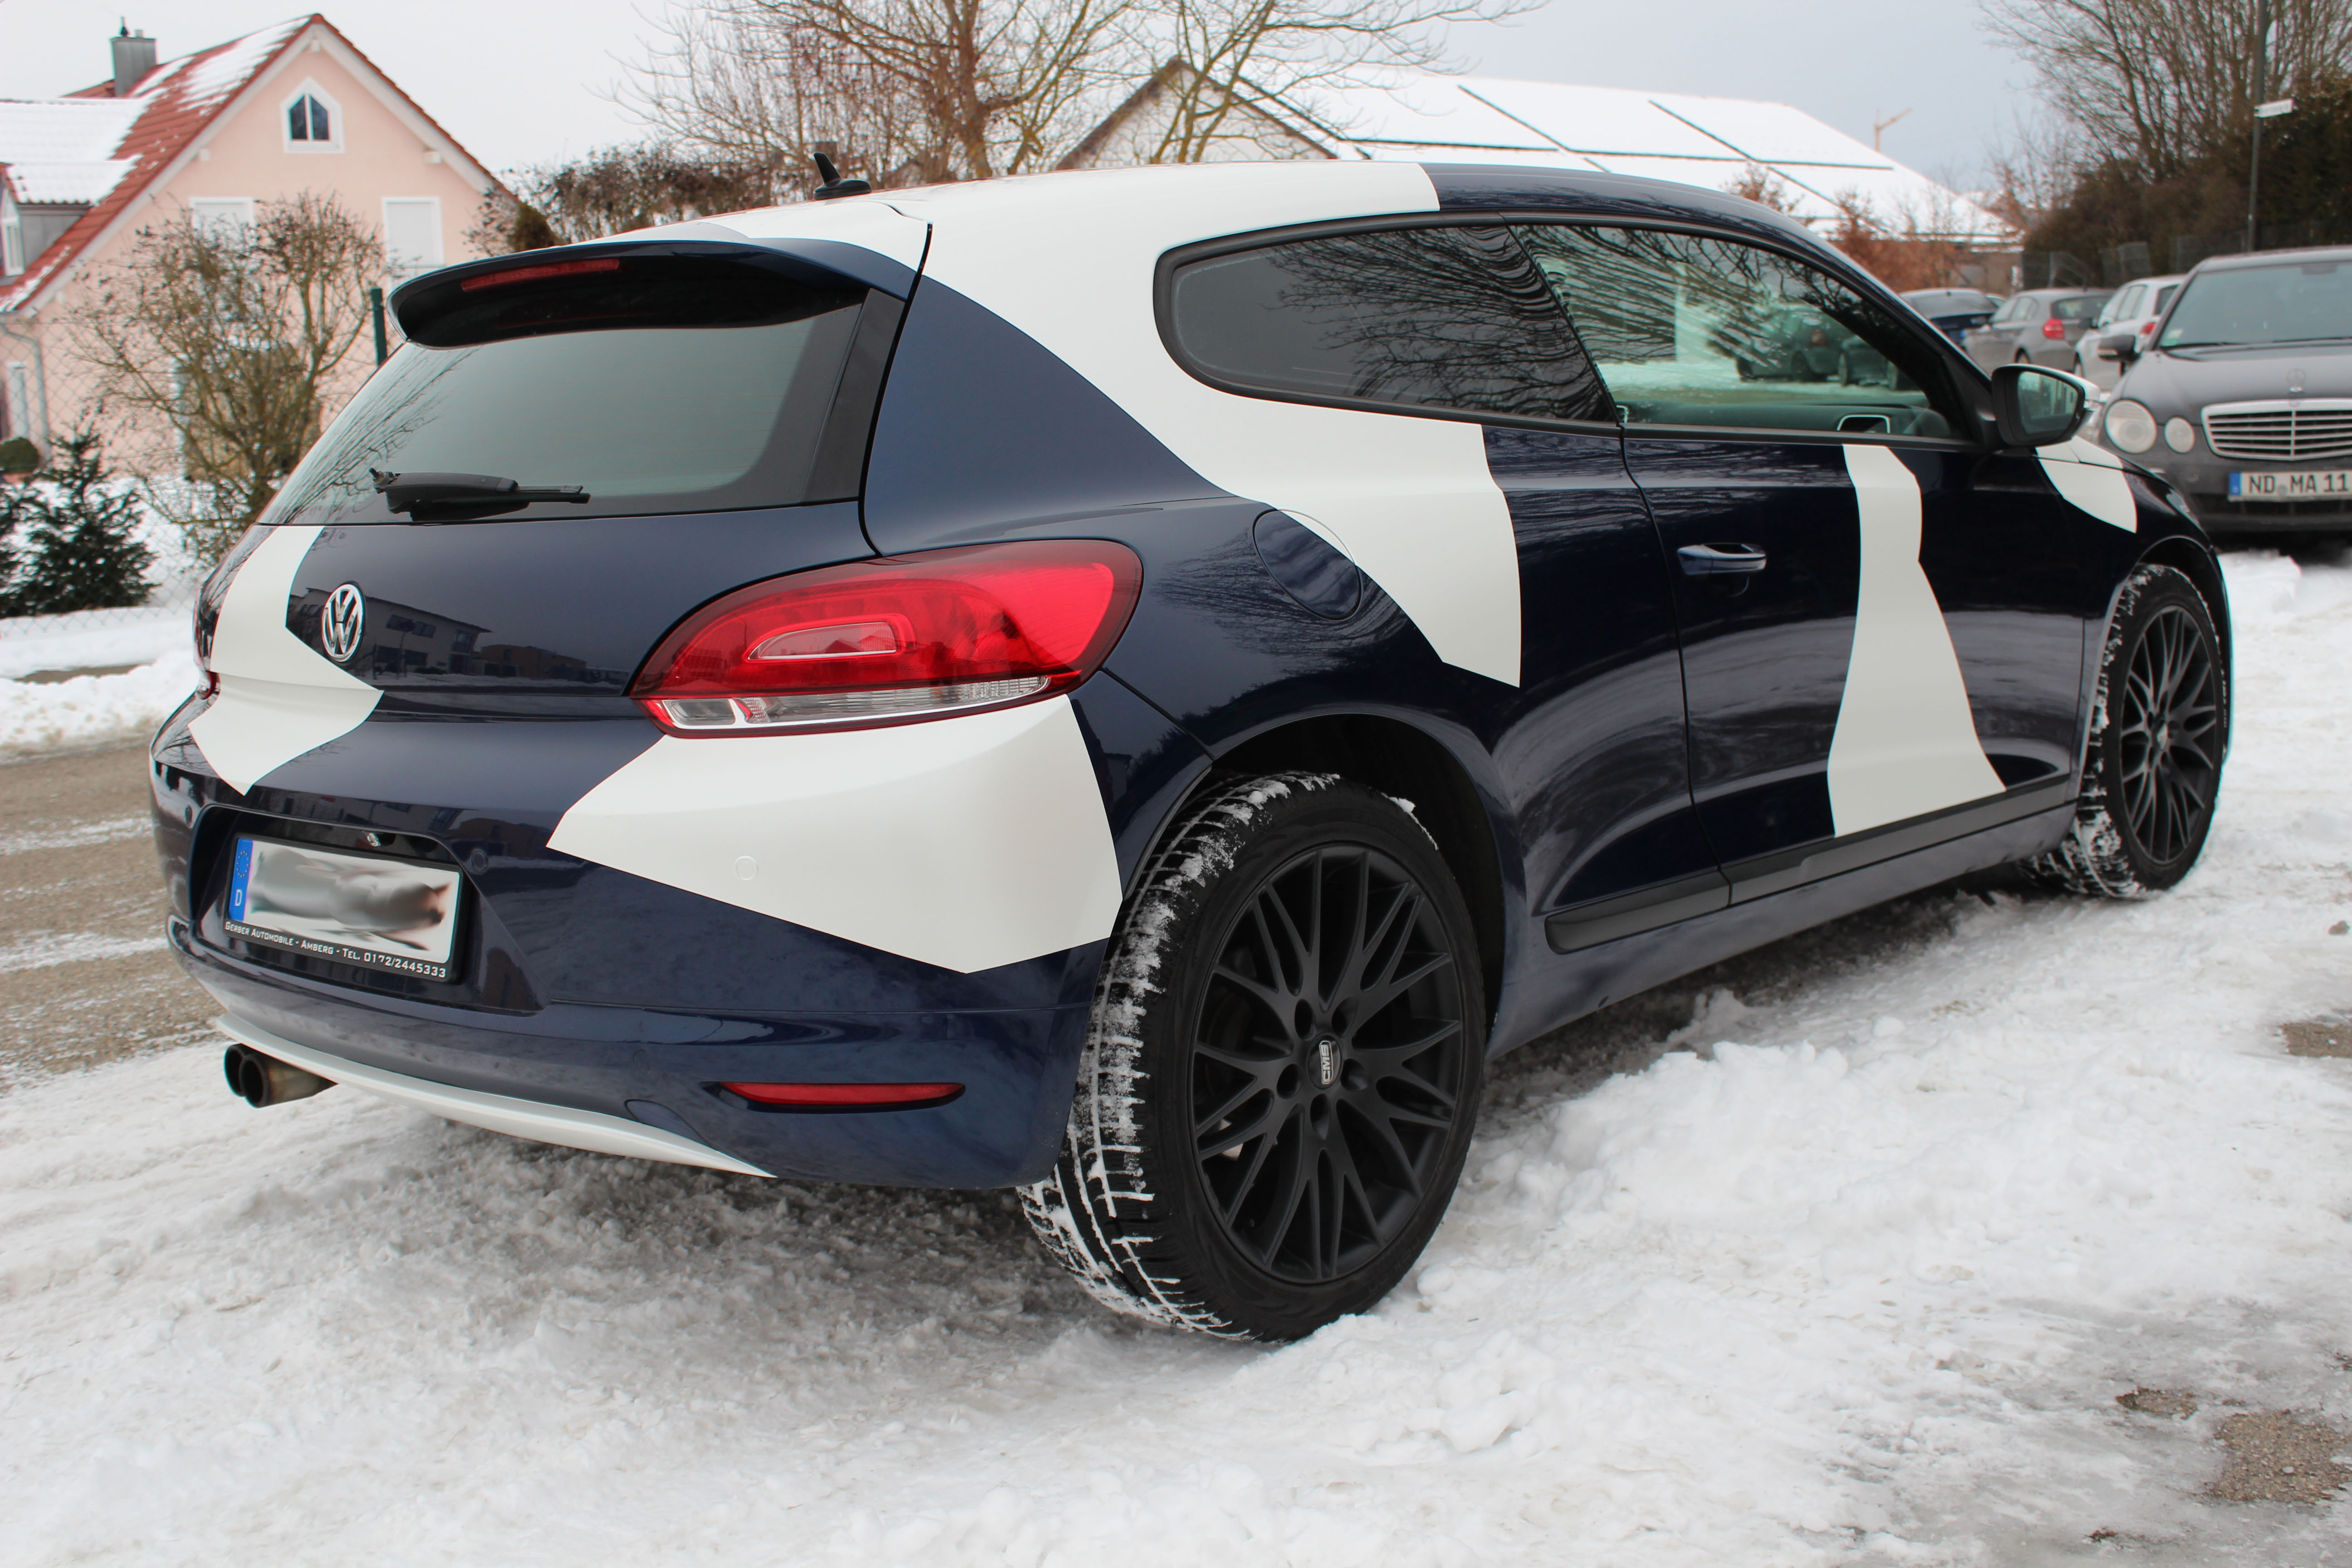 Carwrapping_scirocco_camouflage7